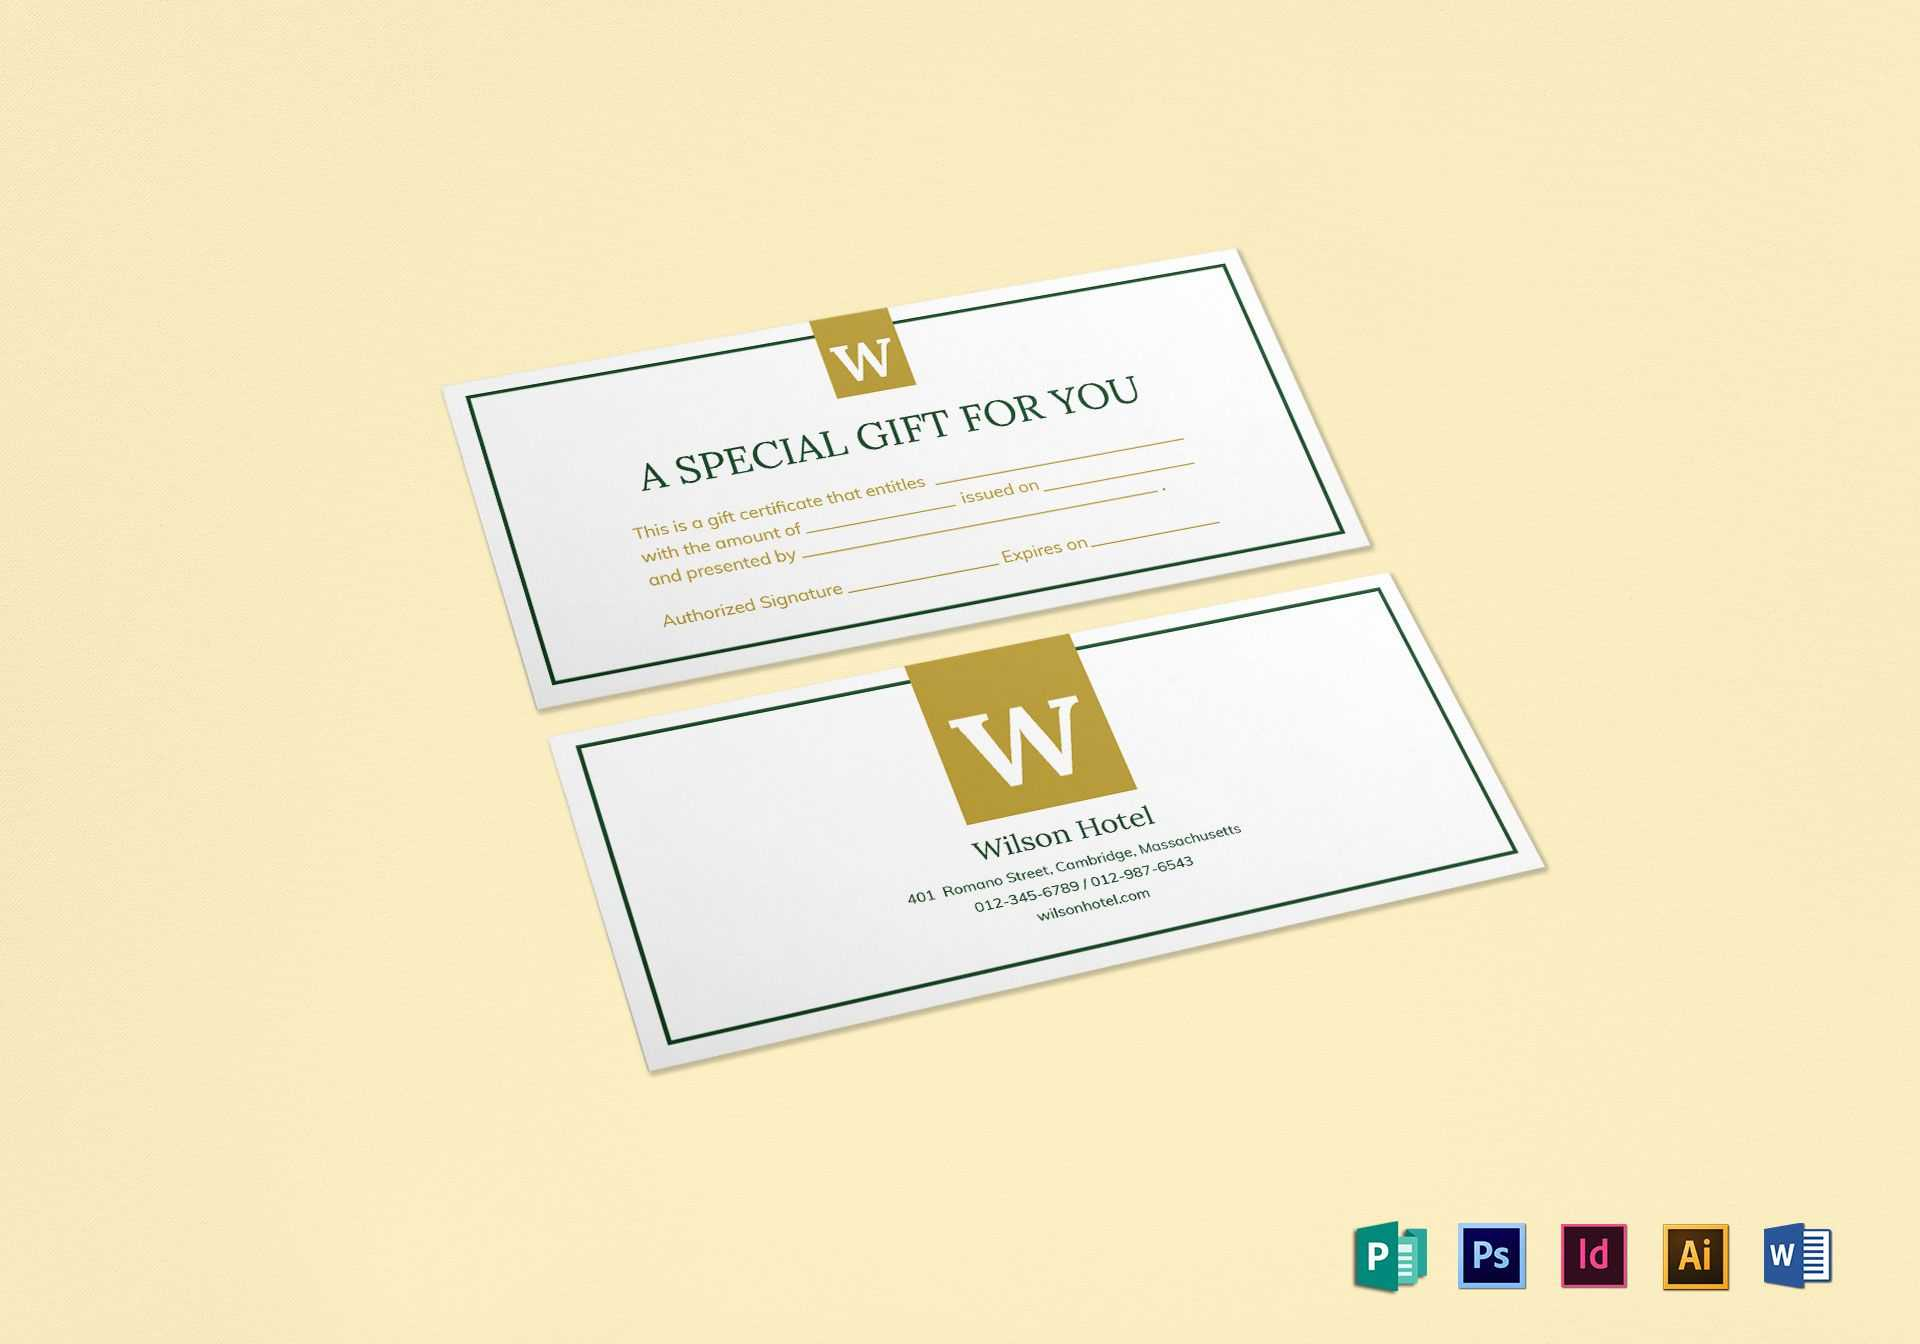 Hotel Gift Certificate Template pertaining to Indesign Gift Certificate Template